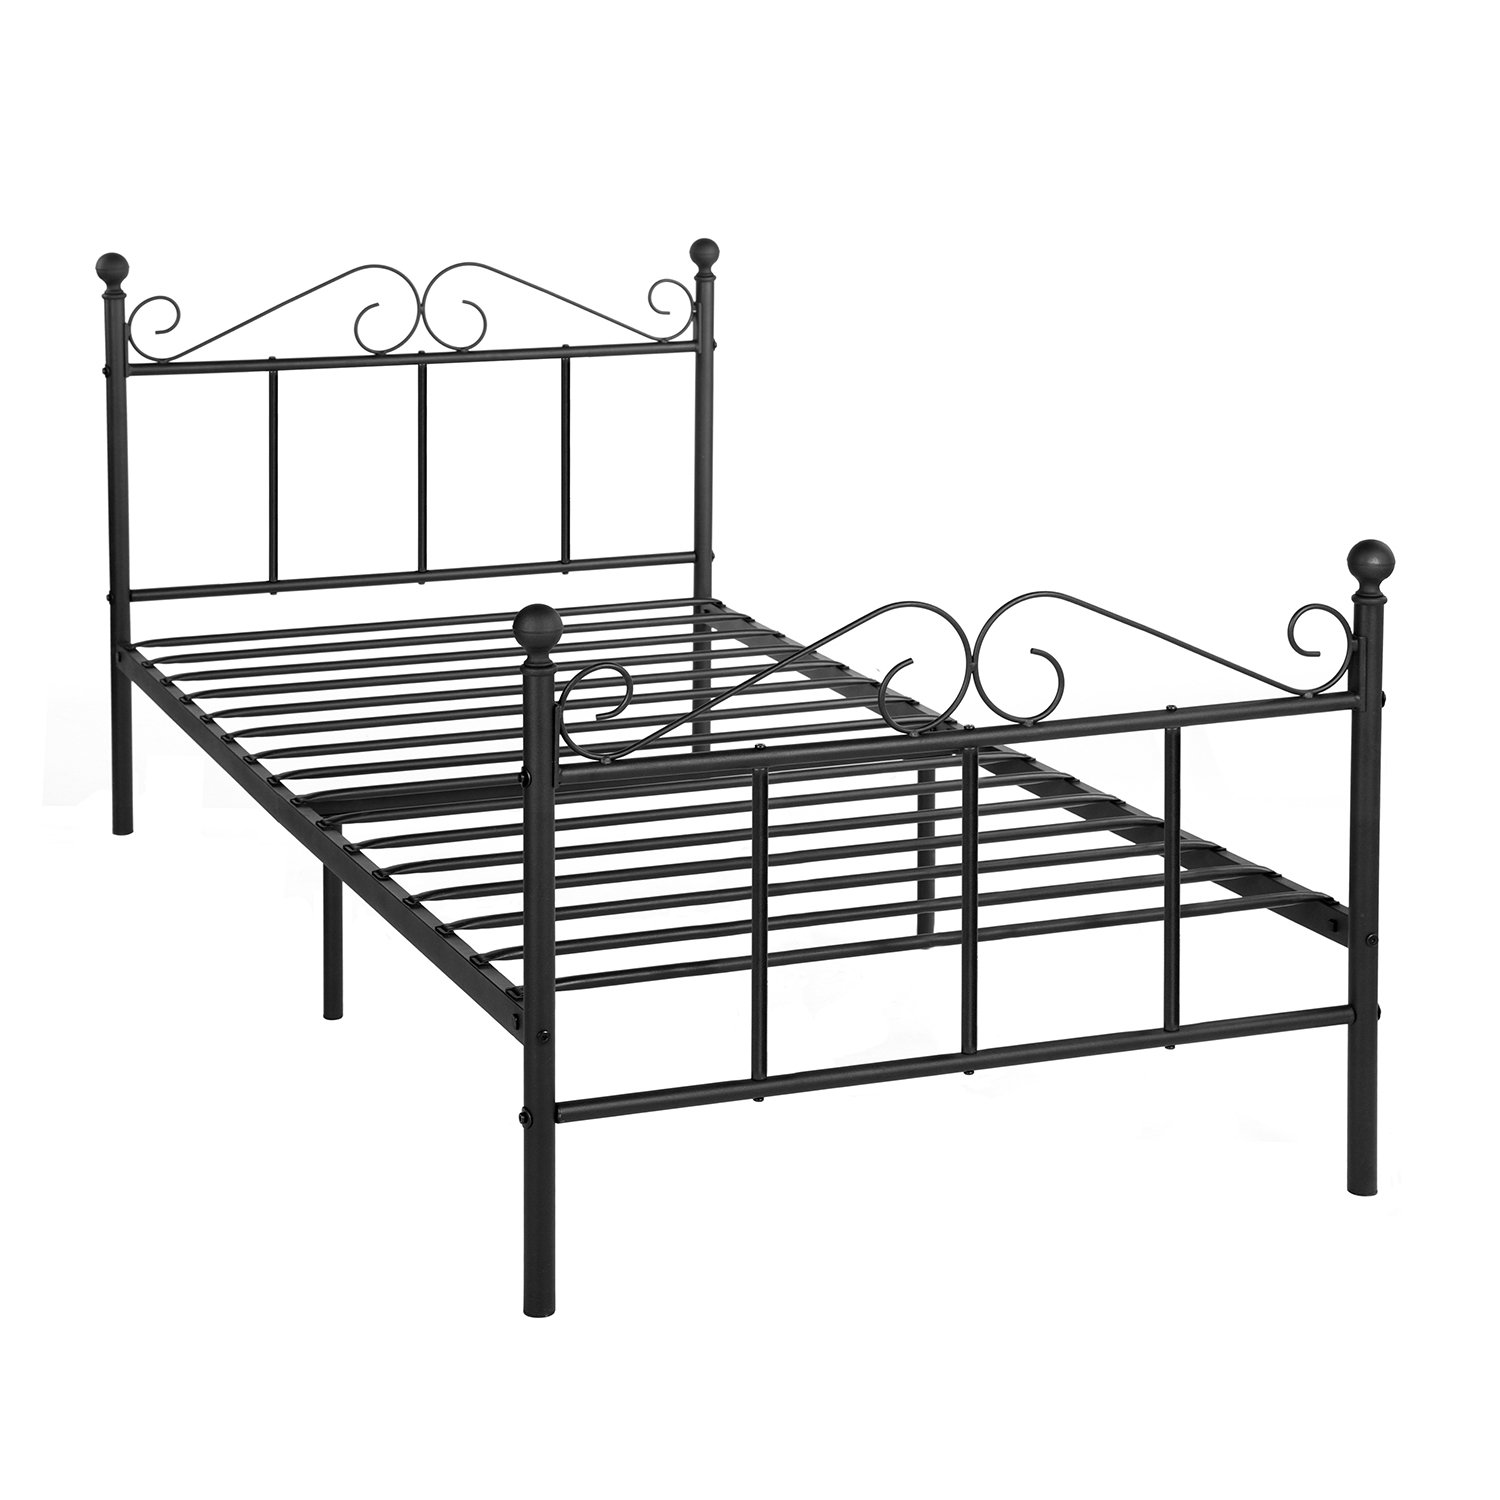 GreenForest Twin Bed Frame Metal Platform Bed with Headboard and Footboard No Box Spring Needed, Black